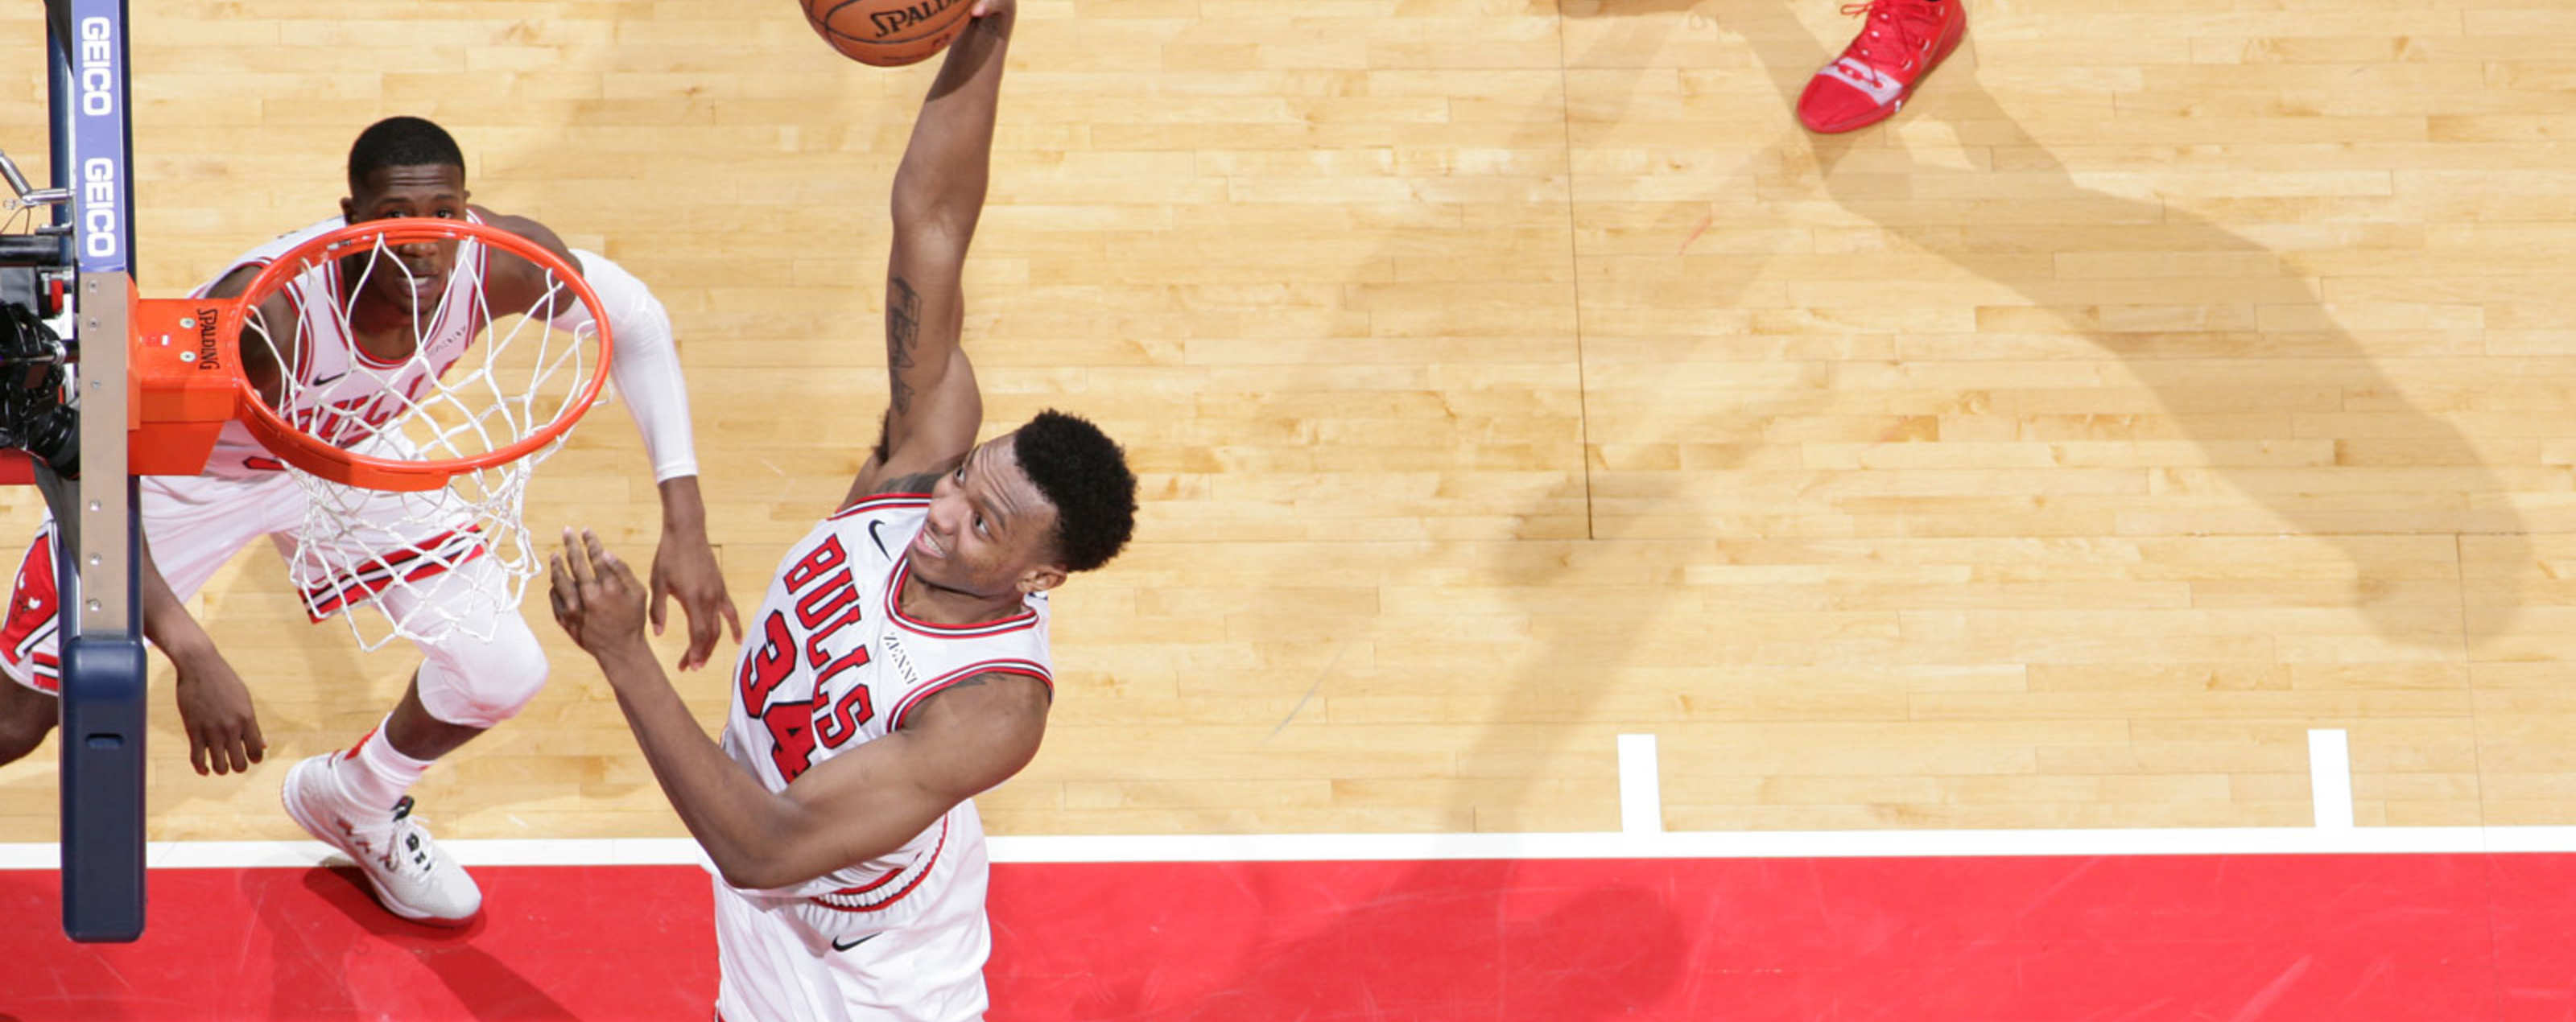 Wendell Carter Jr. dunks the ball against the Washington Wizards.